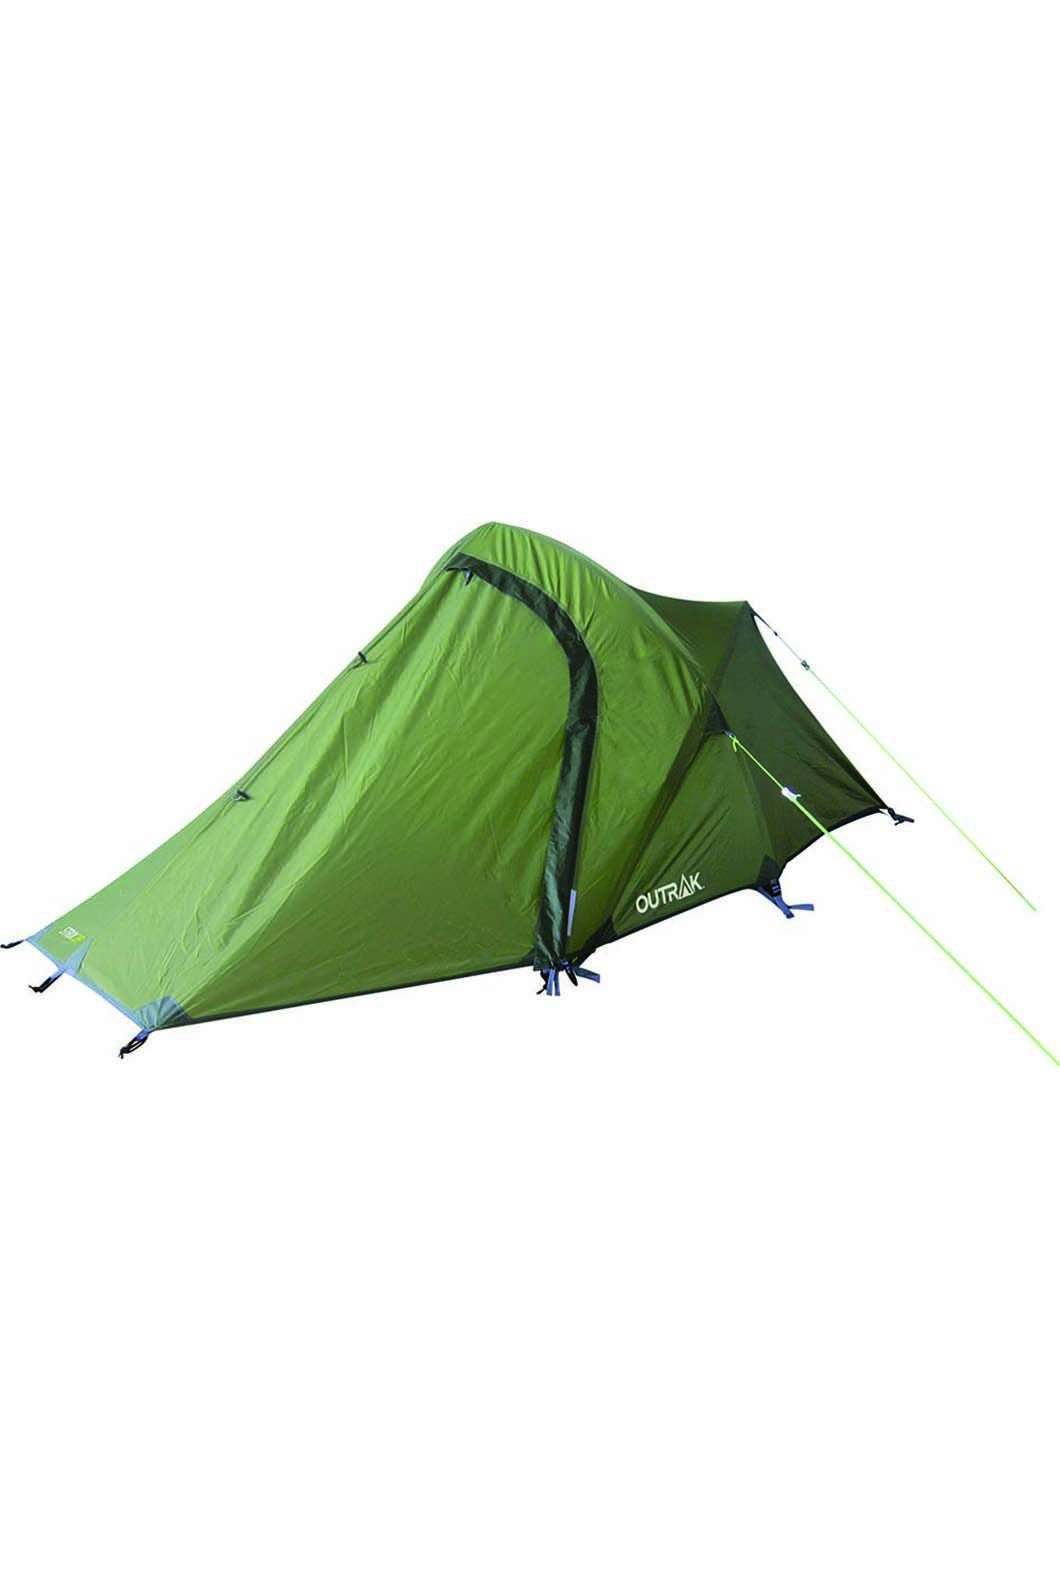 Outrak Strix 2 Person Hiking Tent, None, hi-res